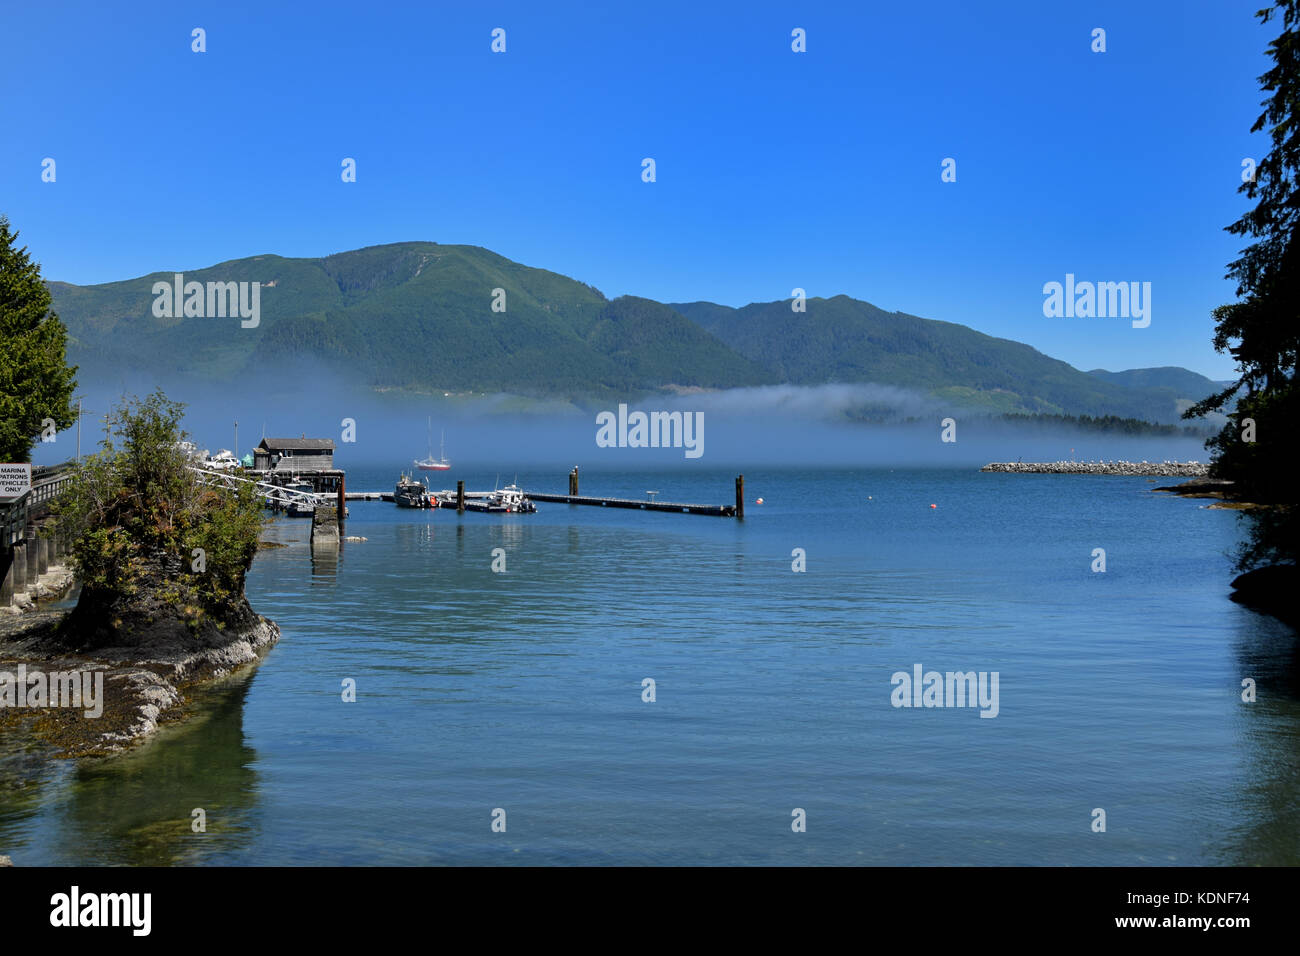 Mist hangs over Port Renfrew's harbor on Vancouver Island, BC, Canada - Stock Image